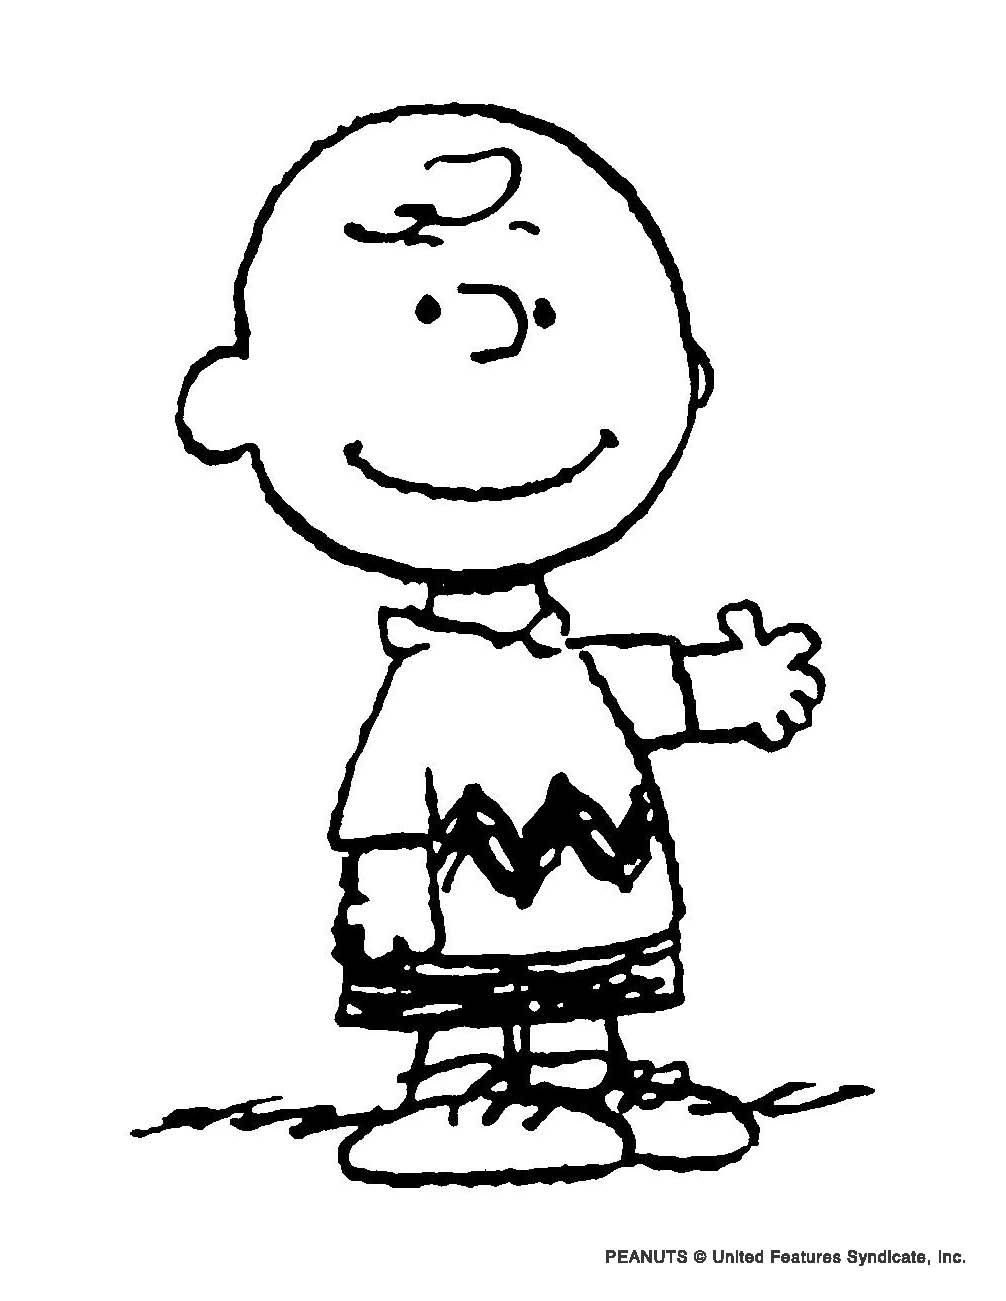 charlie brown coloring pages - Recherche Google | art | Pinterest ...